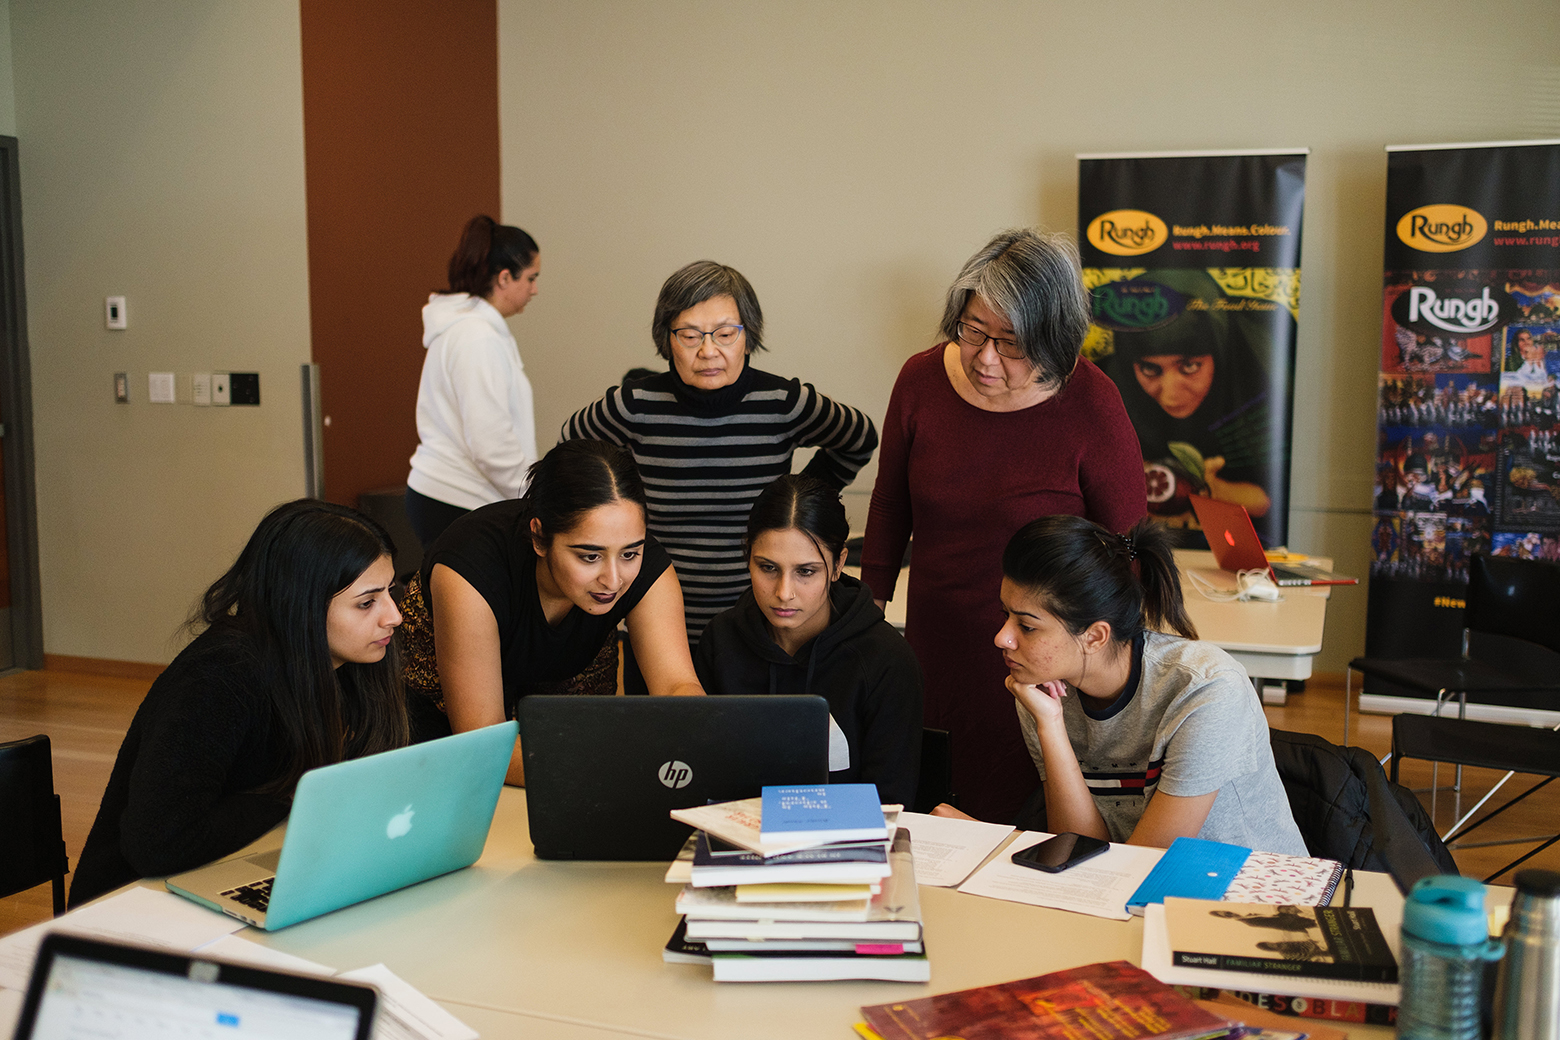 A group of people of all ages gathered around a computer on a table with books and laptops. Image from Wikipedia Edit-a-thon form 2019. Photo by Pardeep Singh.